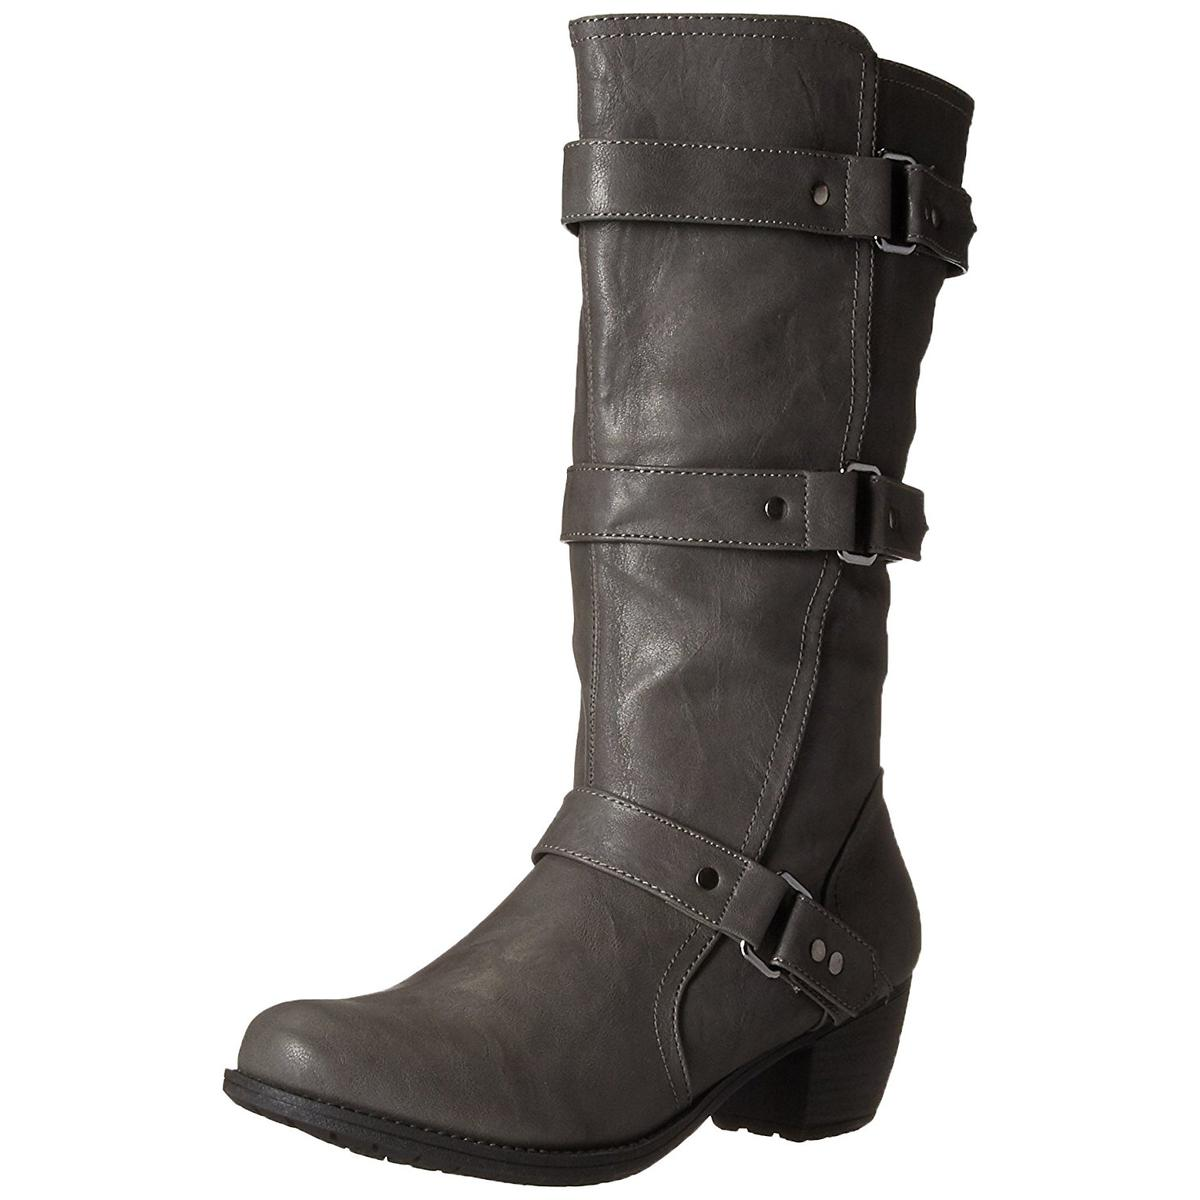 Easy Street Women's Barlow Grey Tall Harness Boots